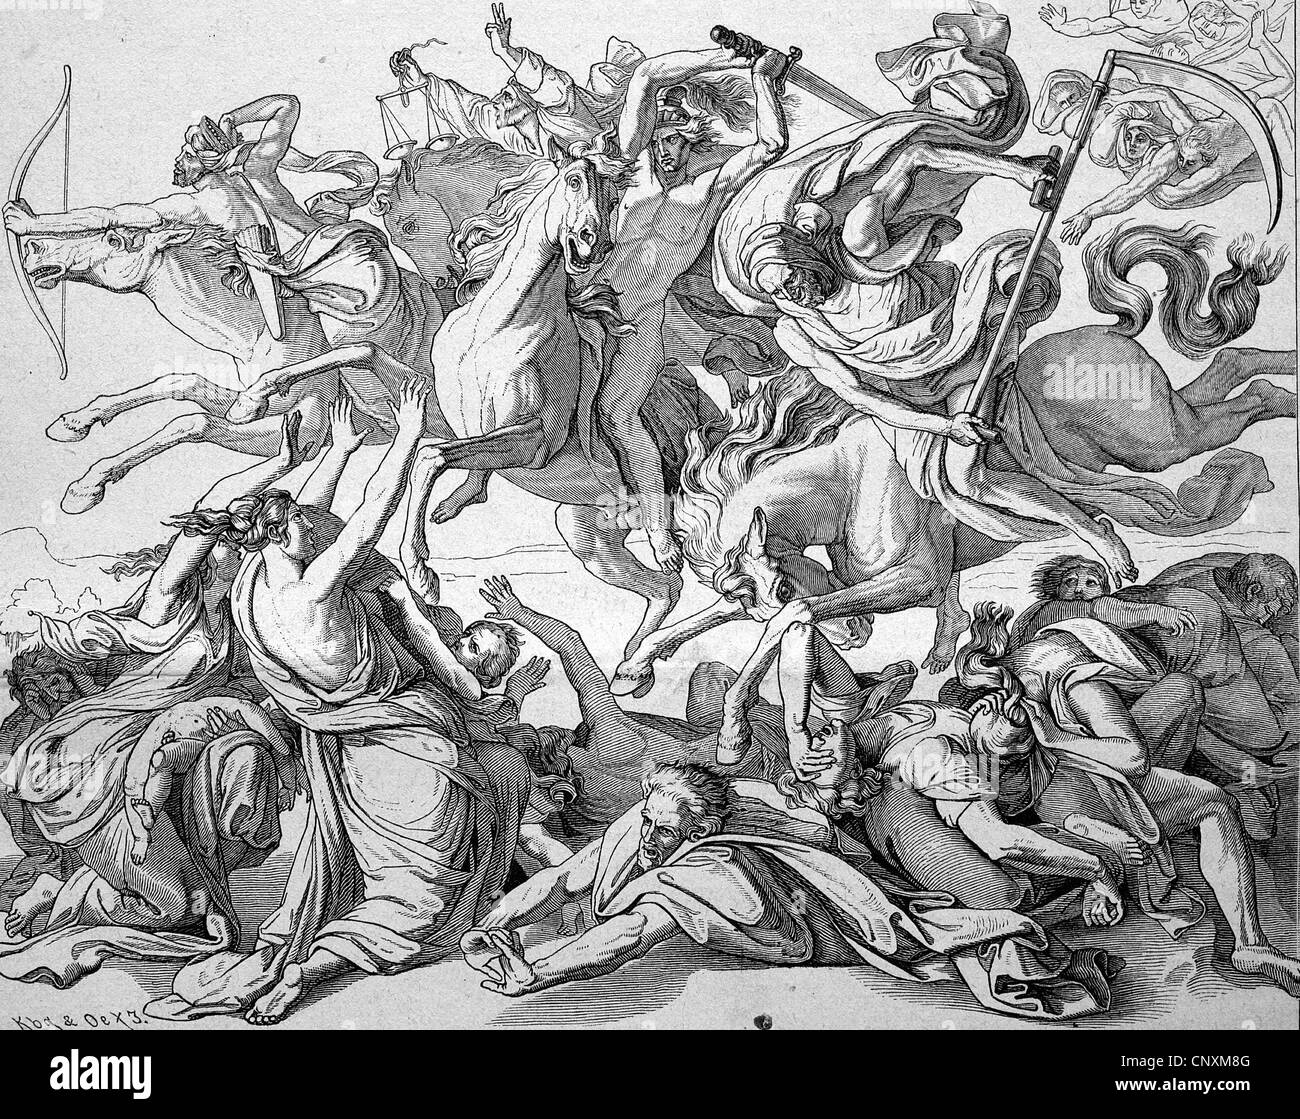 The ride of the Four Horsemen of the Apocalypse, historical engraving, 1883 - Stock Image